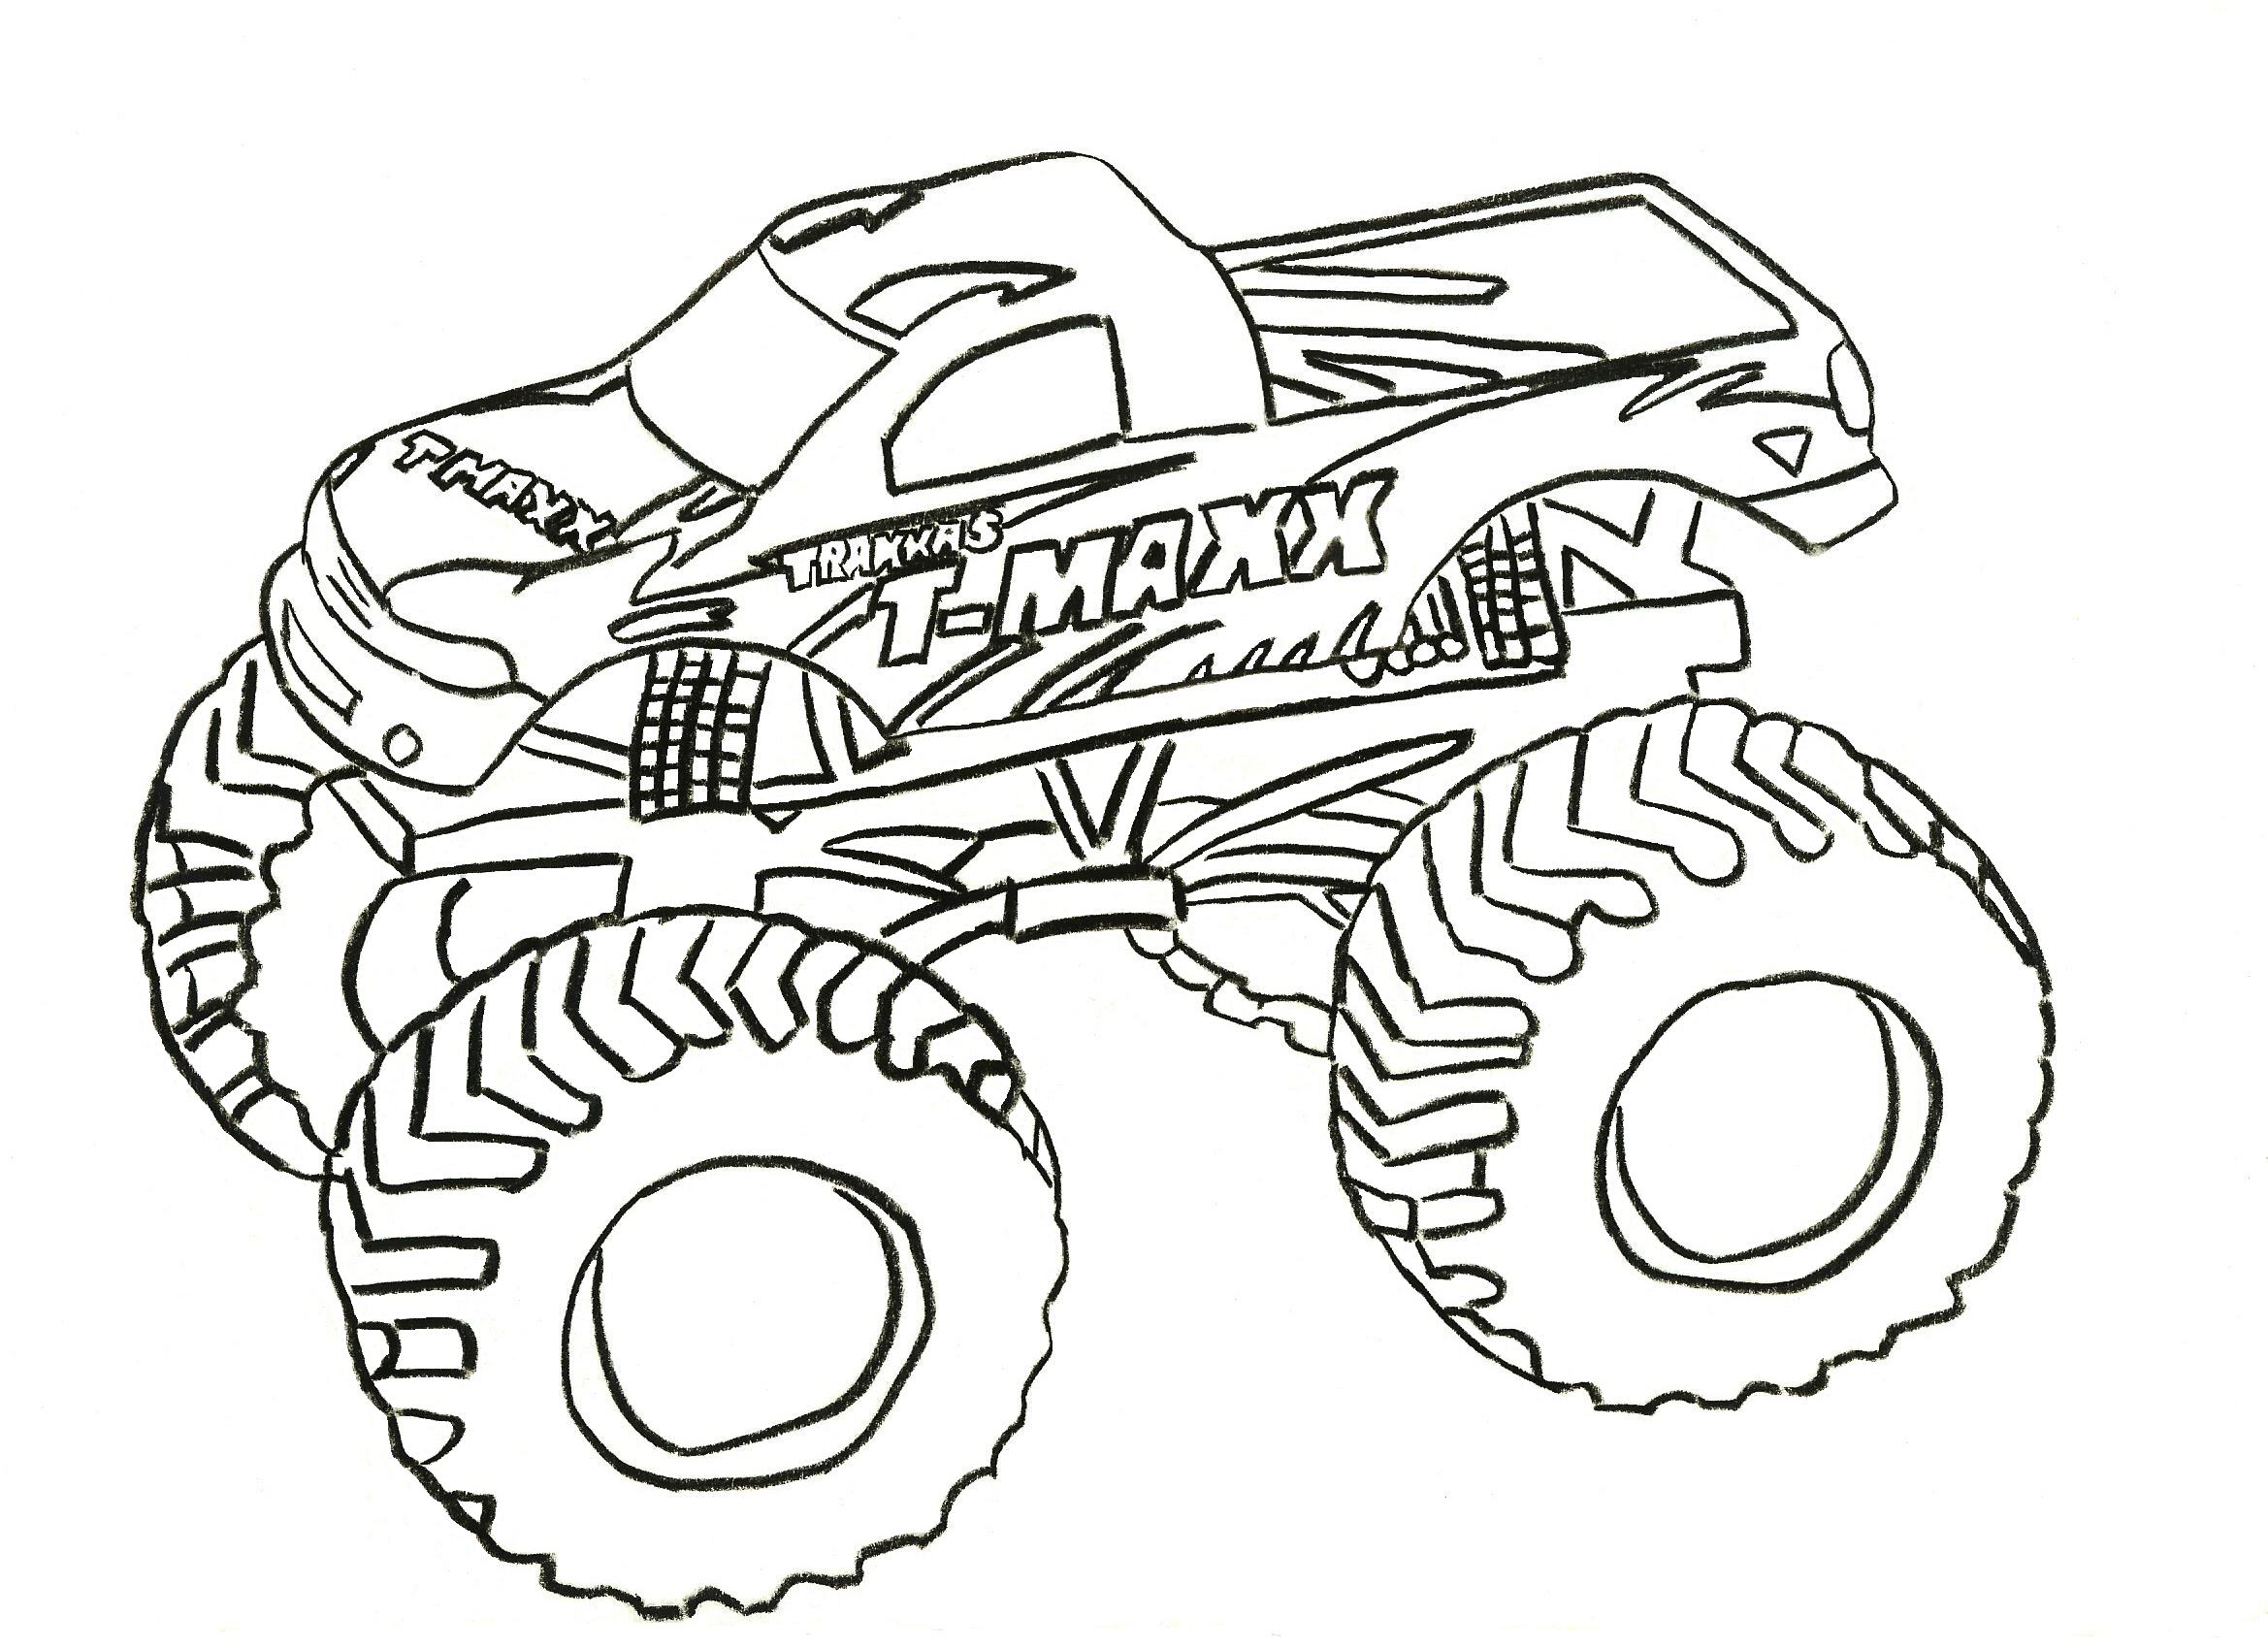 ... Coloring Sheets | Just another WordPress site on mibb-design.com